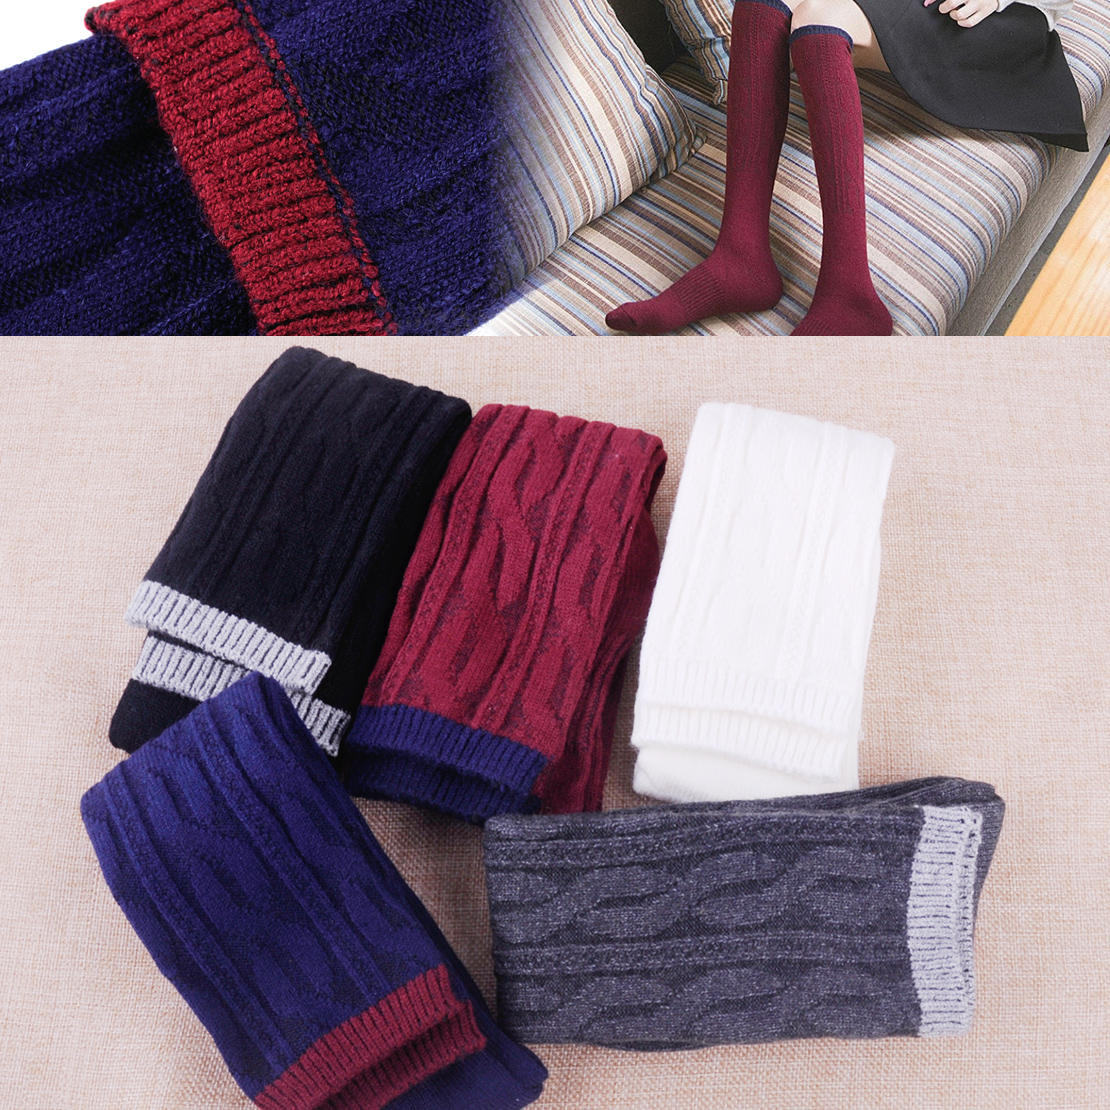 New Men Women Unisex Cotton Knee-High Long Solid Warm Thick Soft Comfort Boot Sock for winter Causal Dress Socks Wholesale